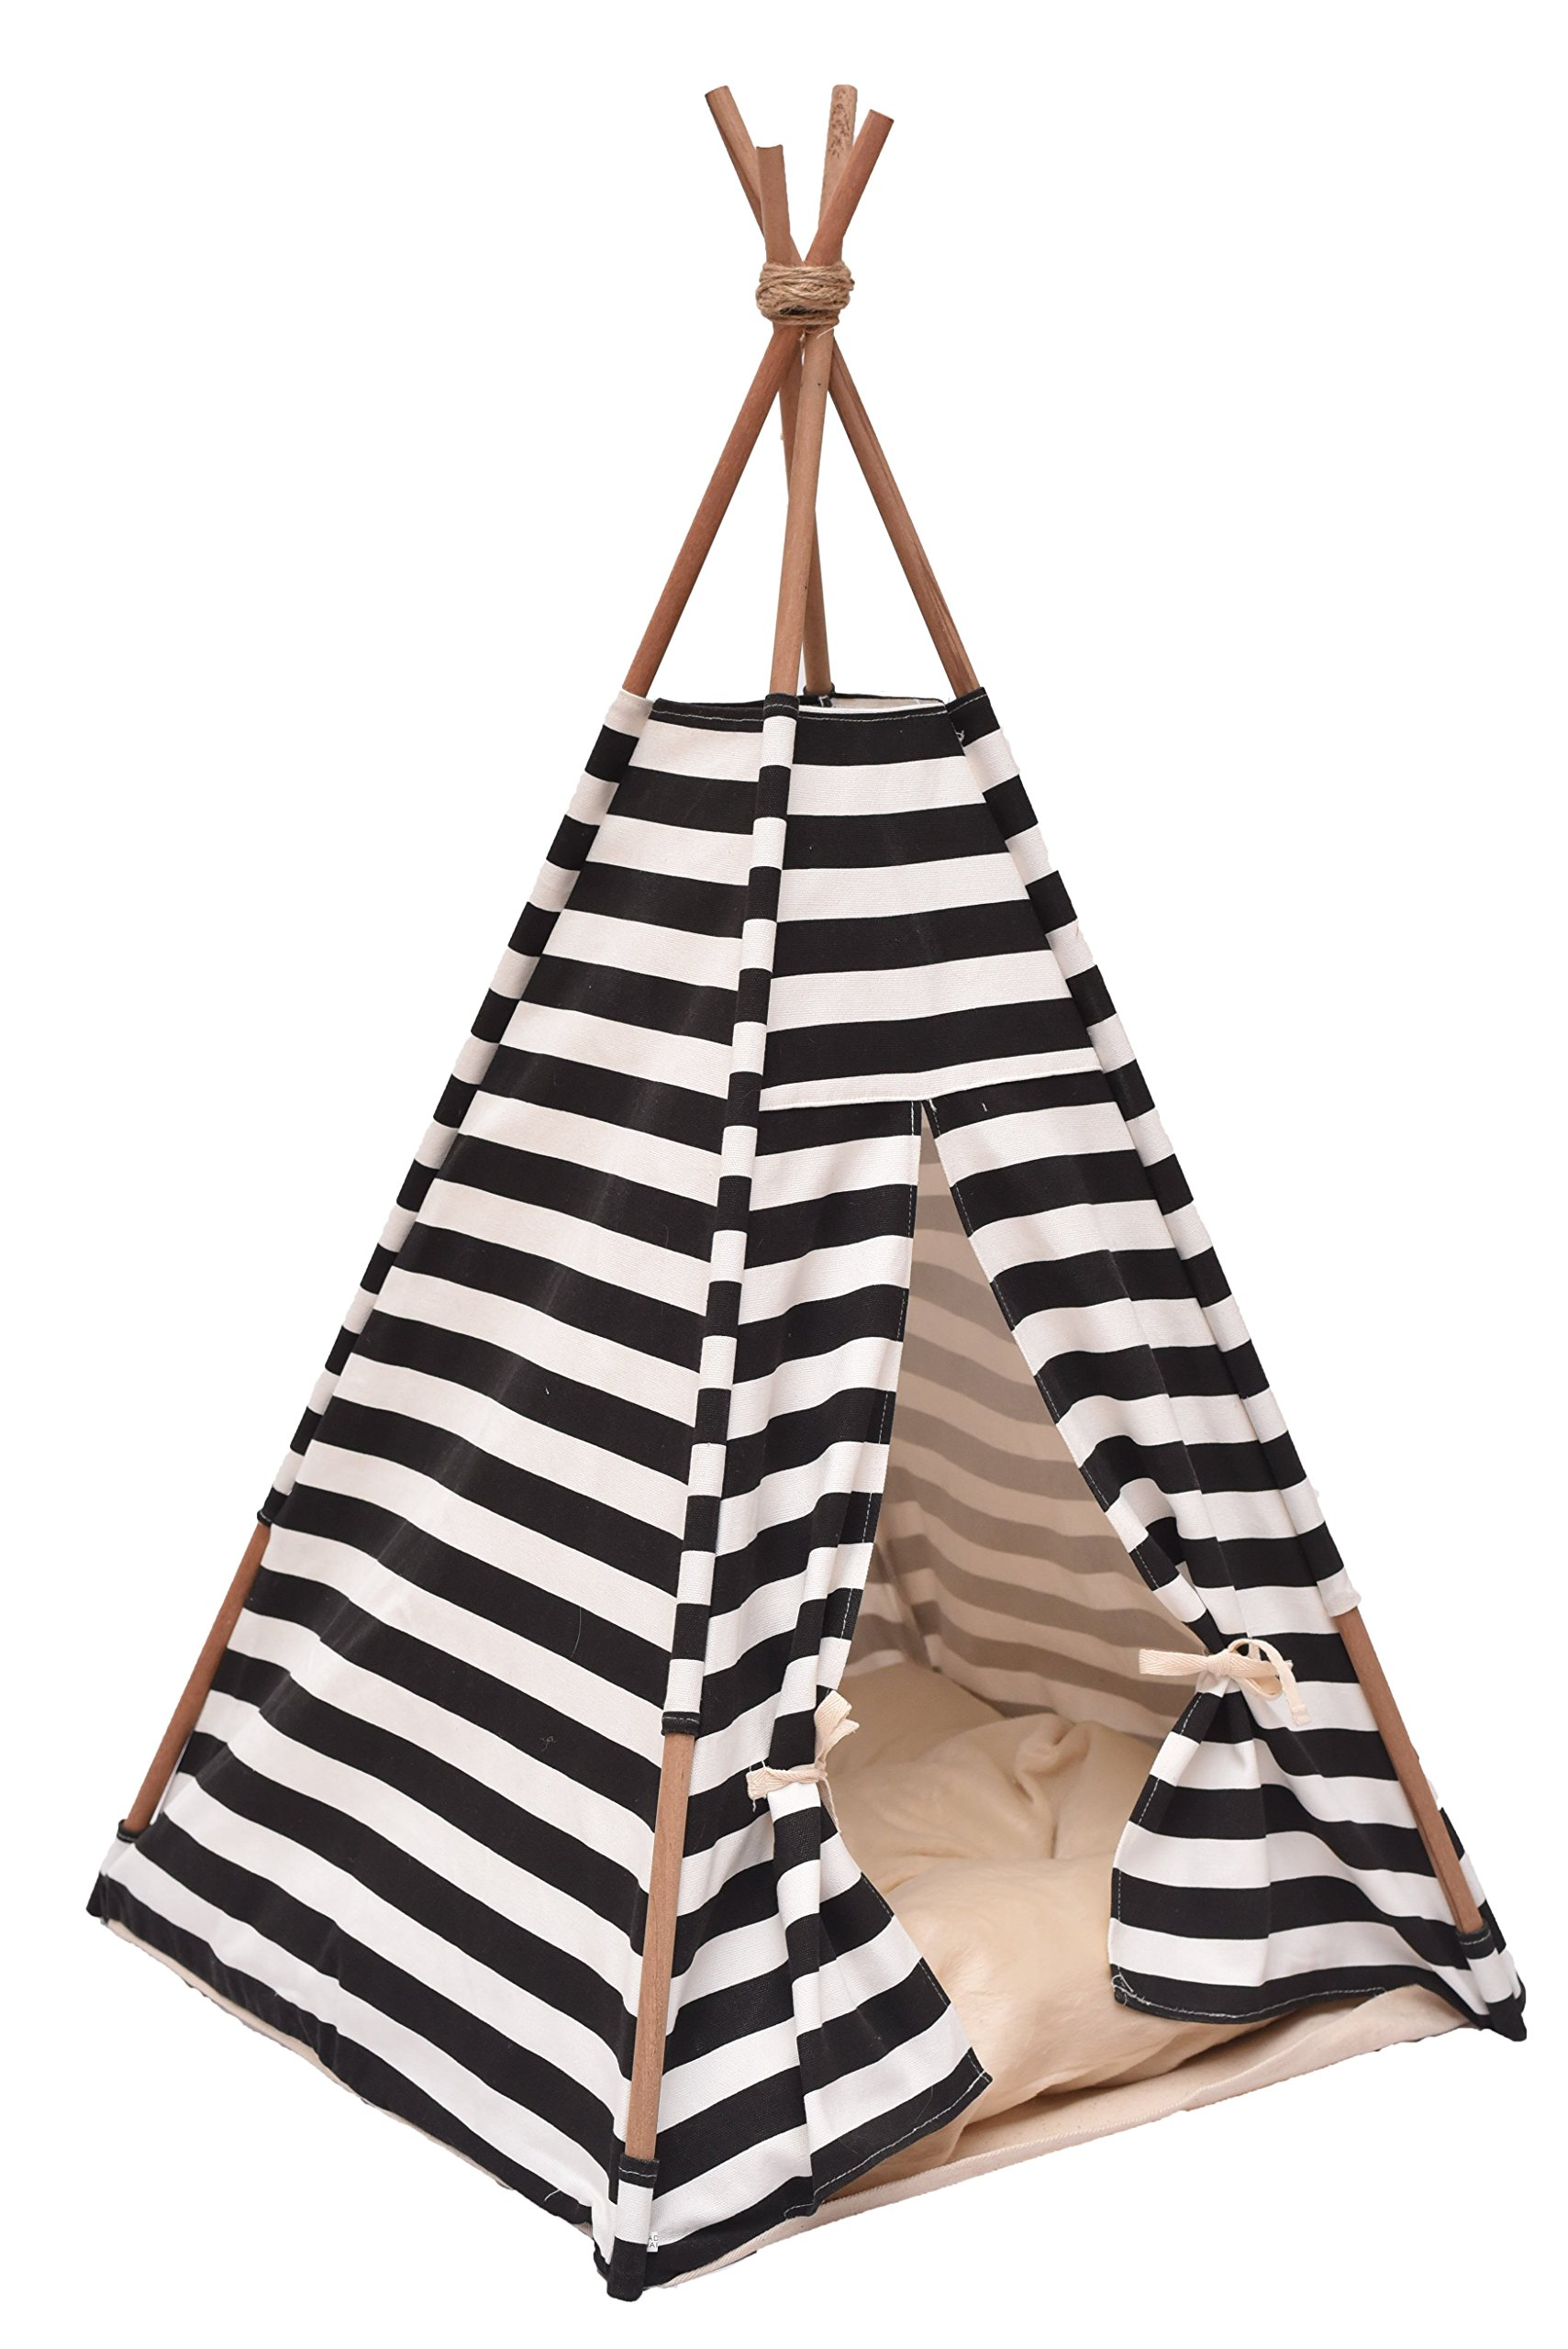 Thai Pet Teepee Handmade Size S_38x38x70 cm TP001, Pet teepee, Dog teepee, Cat teepee, Cat bed, Dog bed, Dog tent and Dog house FREE pet toy for all purchase! Pet toy made from 100% cotton and ha